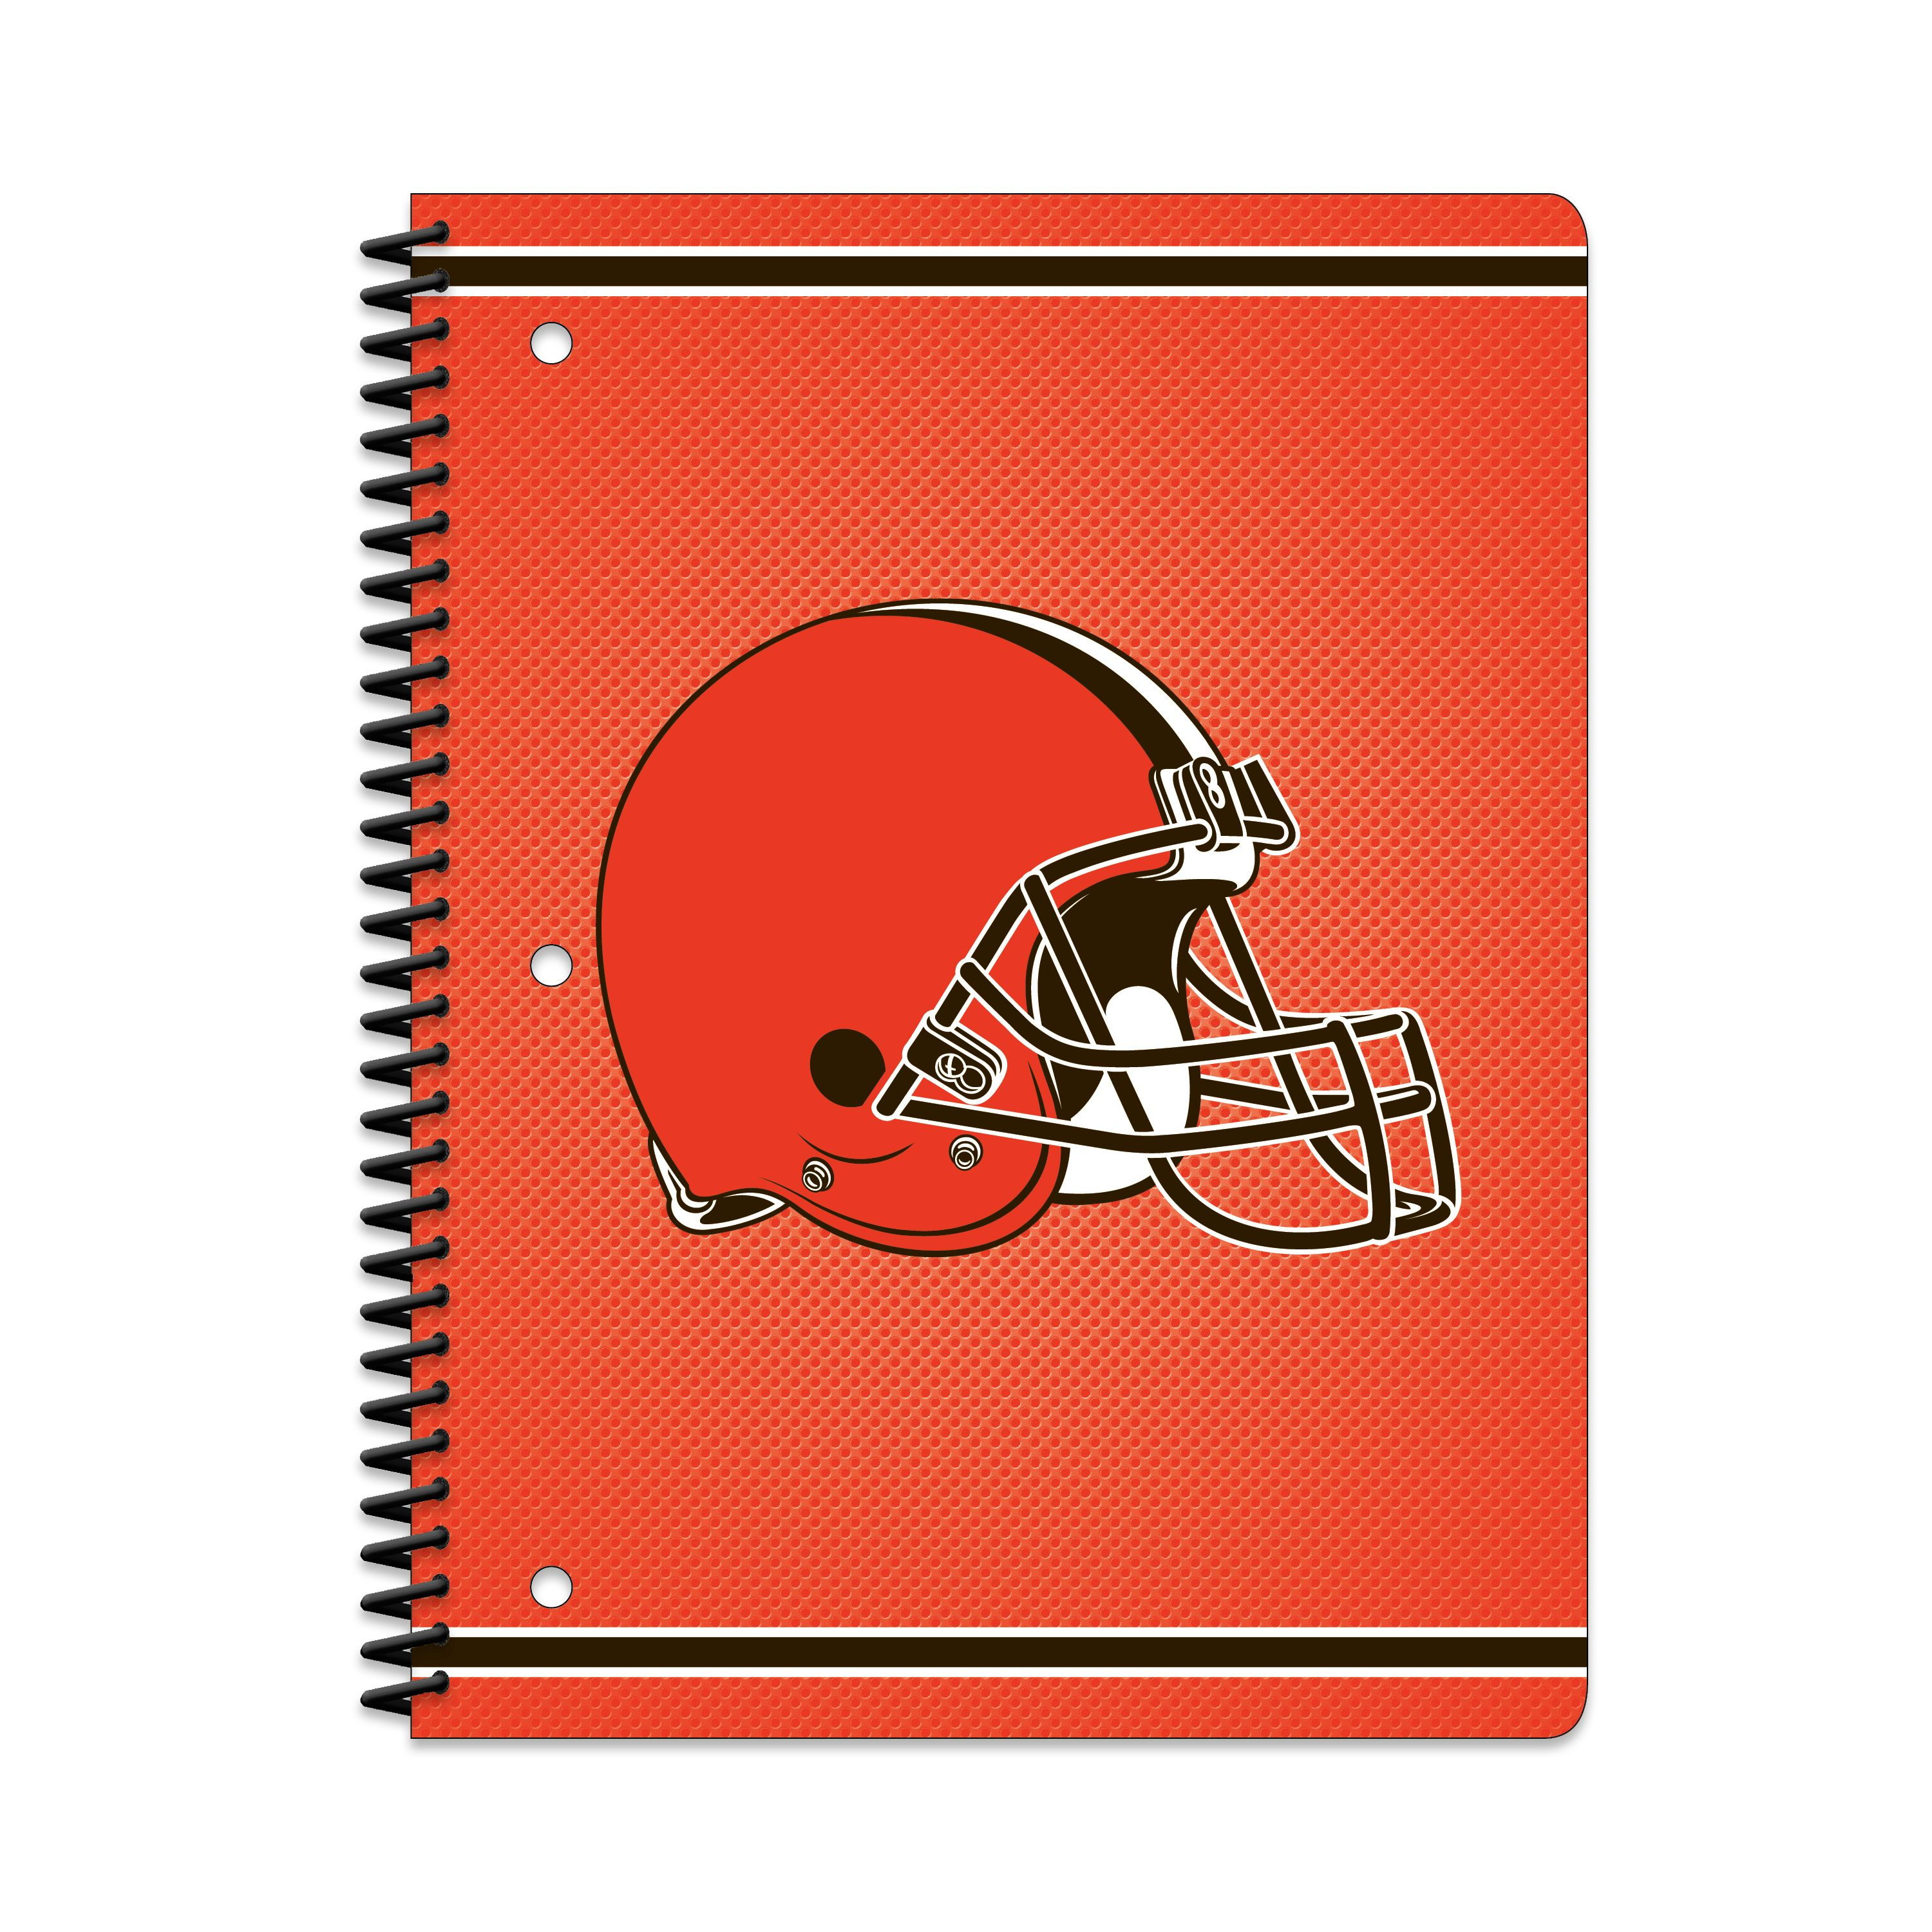 CLEVELAND BROWNS CLASSIC 1-SUBJECT NOTEBOOK